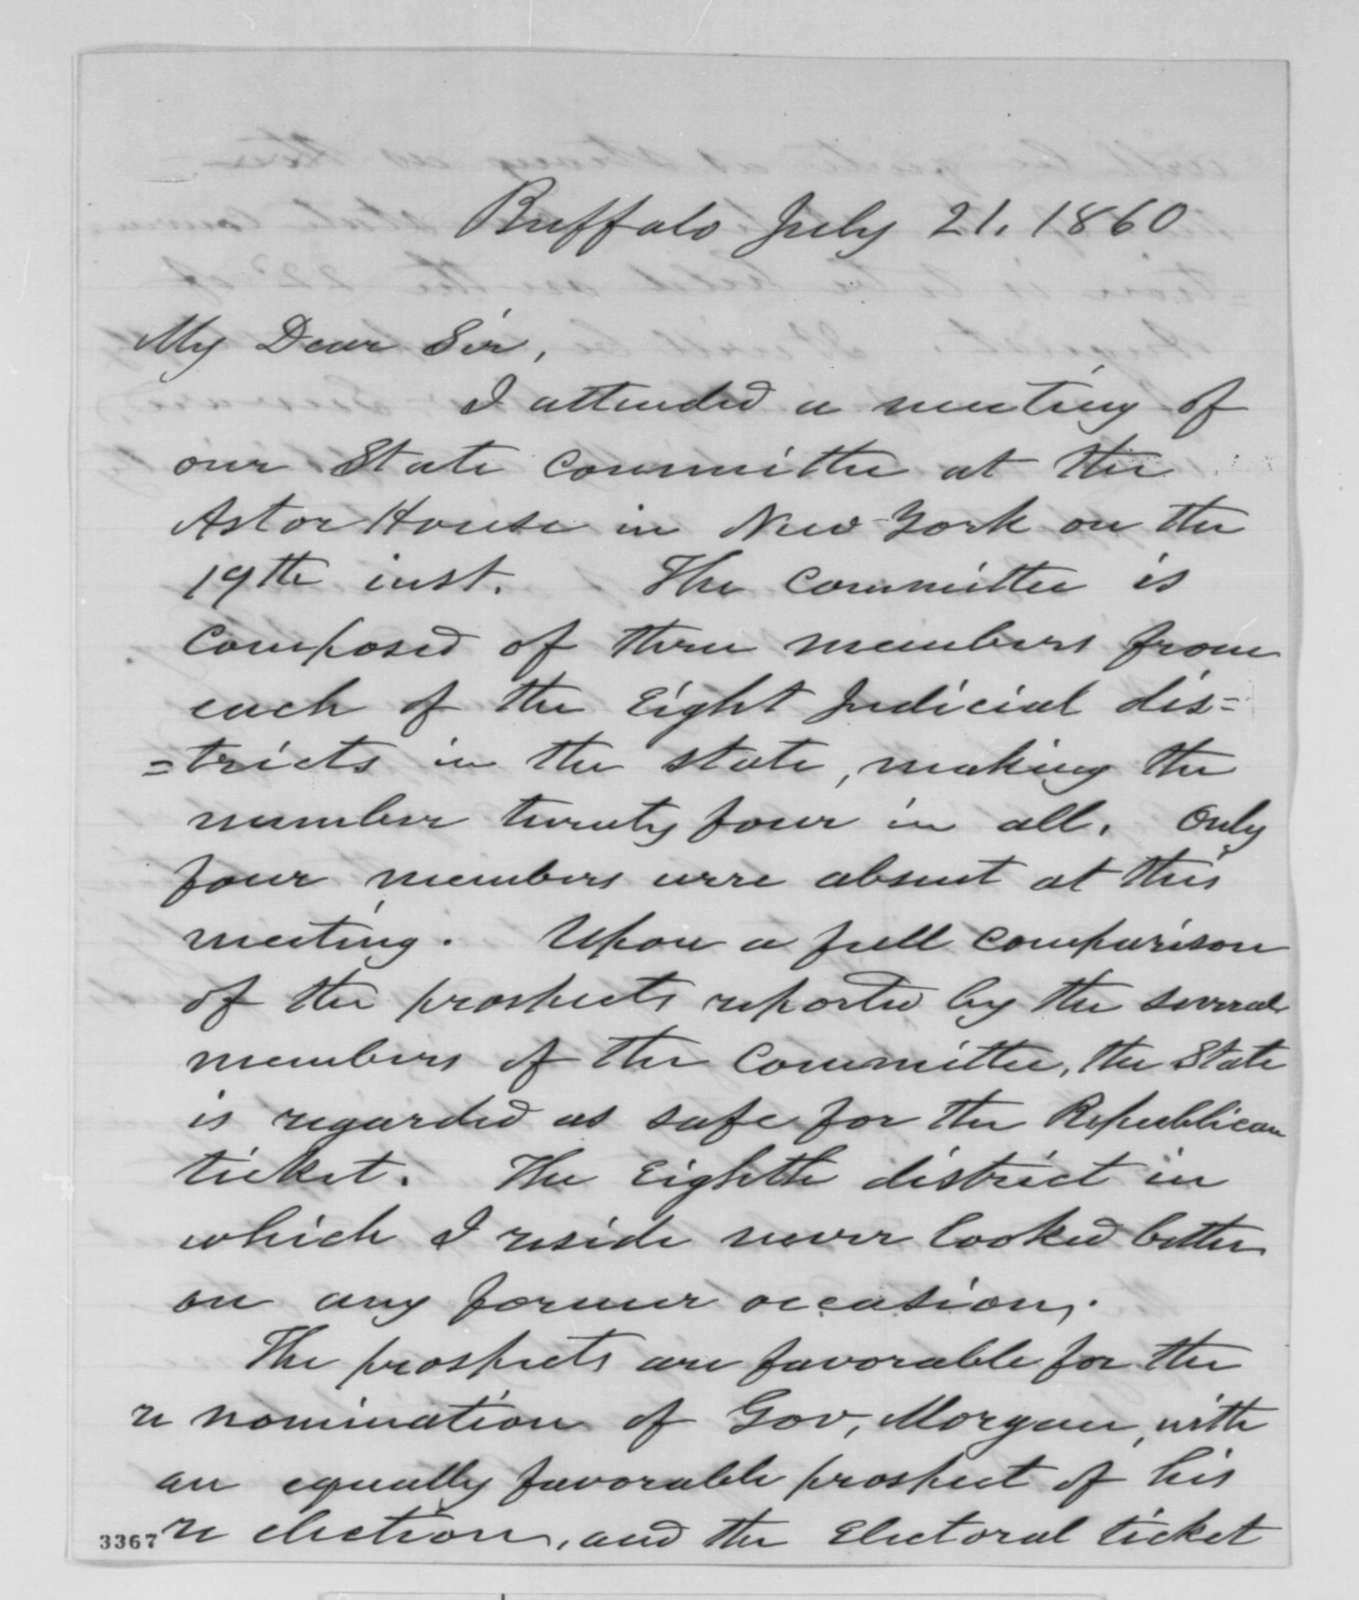 Elbridge G. Spaulding to Abraham Lincoln, Saturday, July 21, 1860  (New York politics)